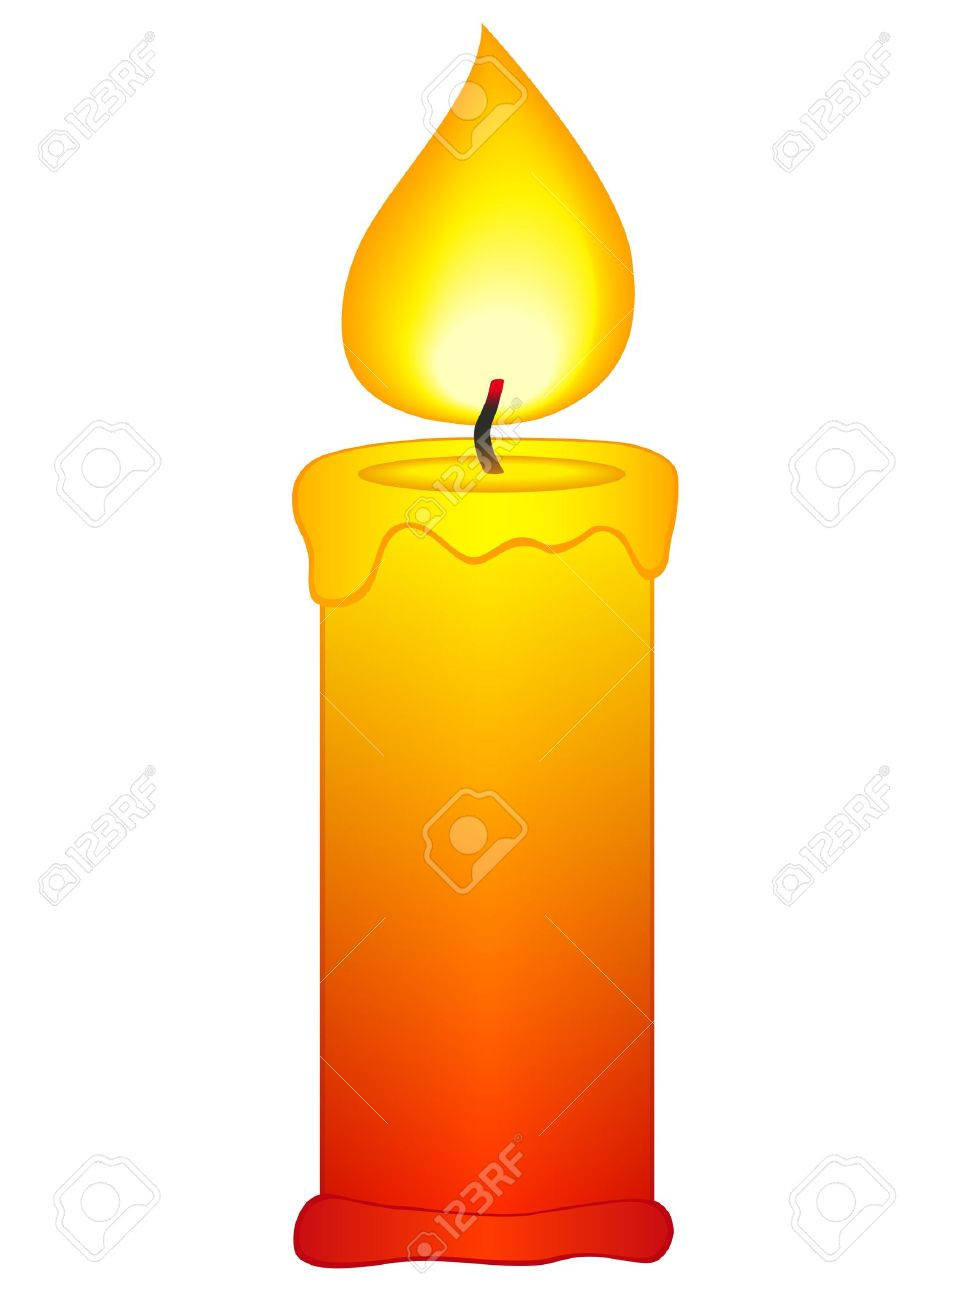 Candle Flame: Candle Icon On A .-candle flame: Candle icon on a .-7